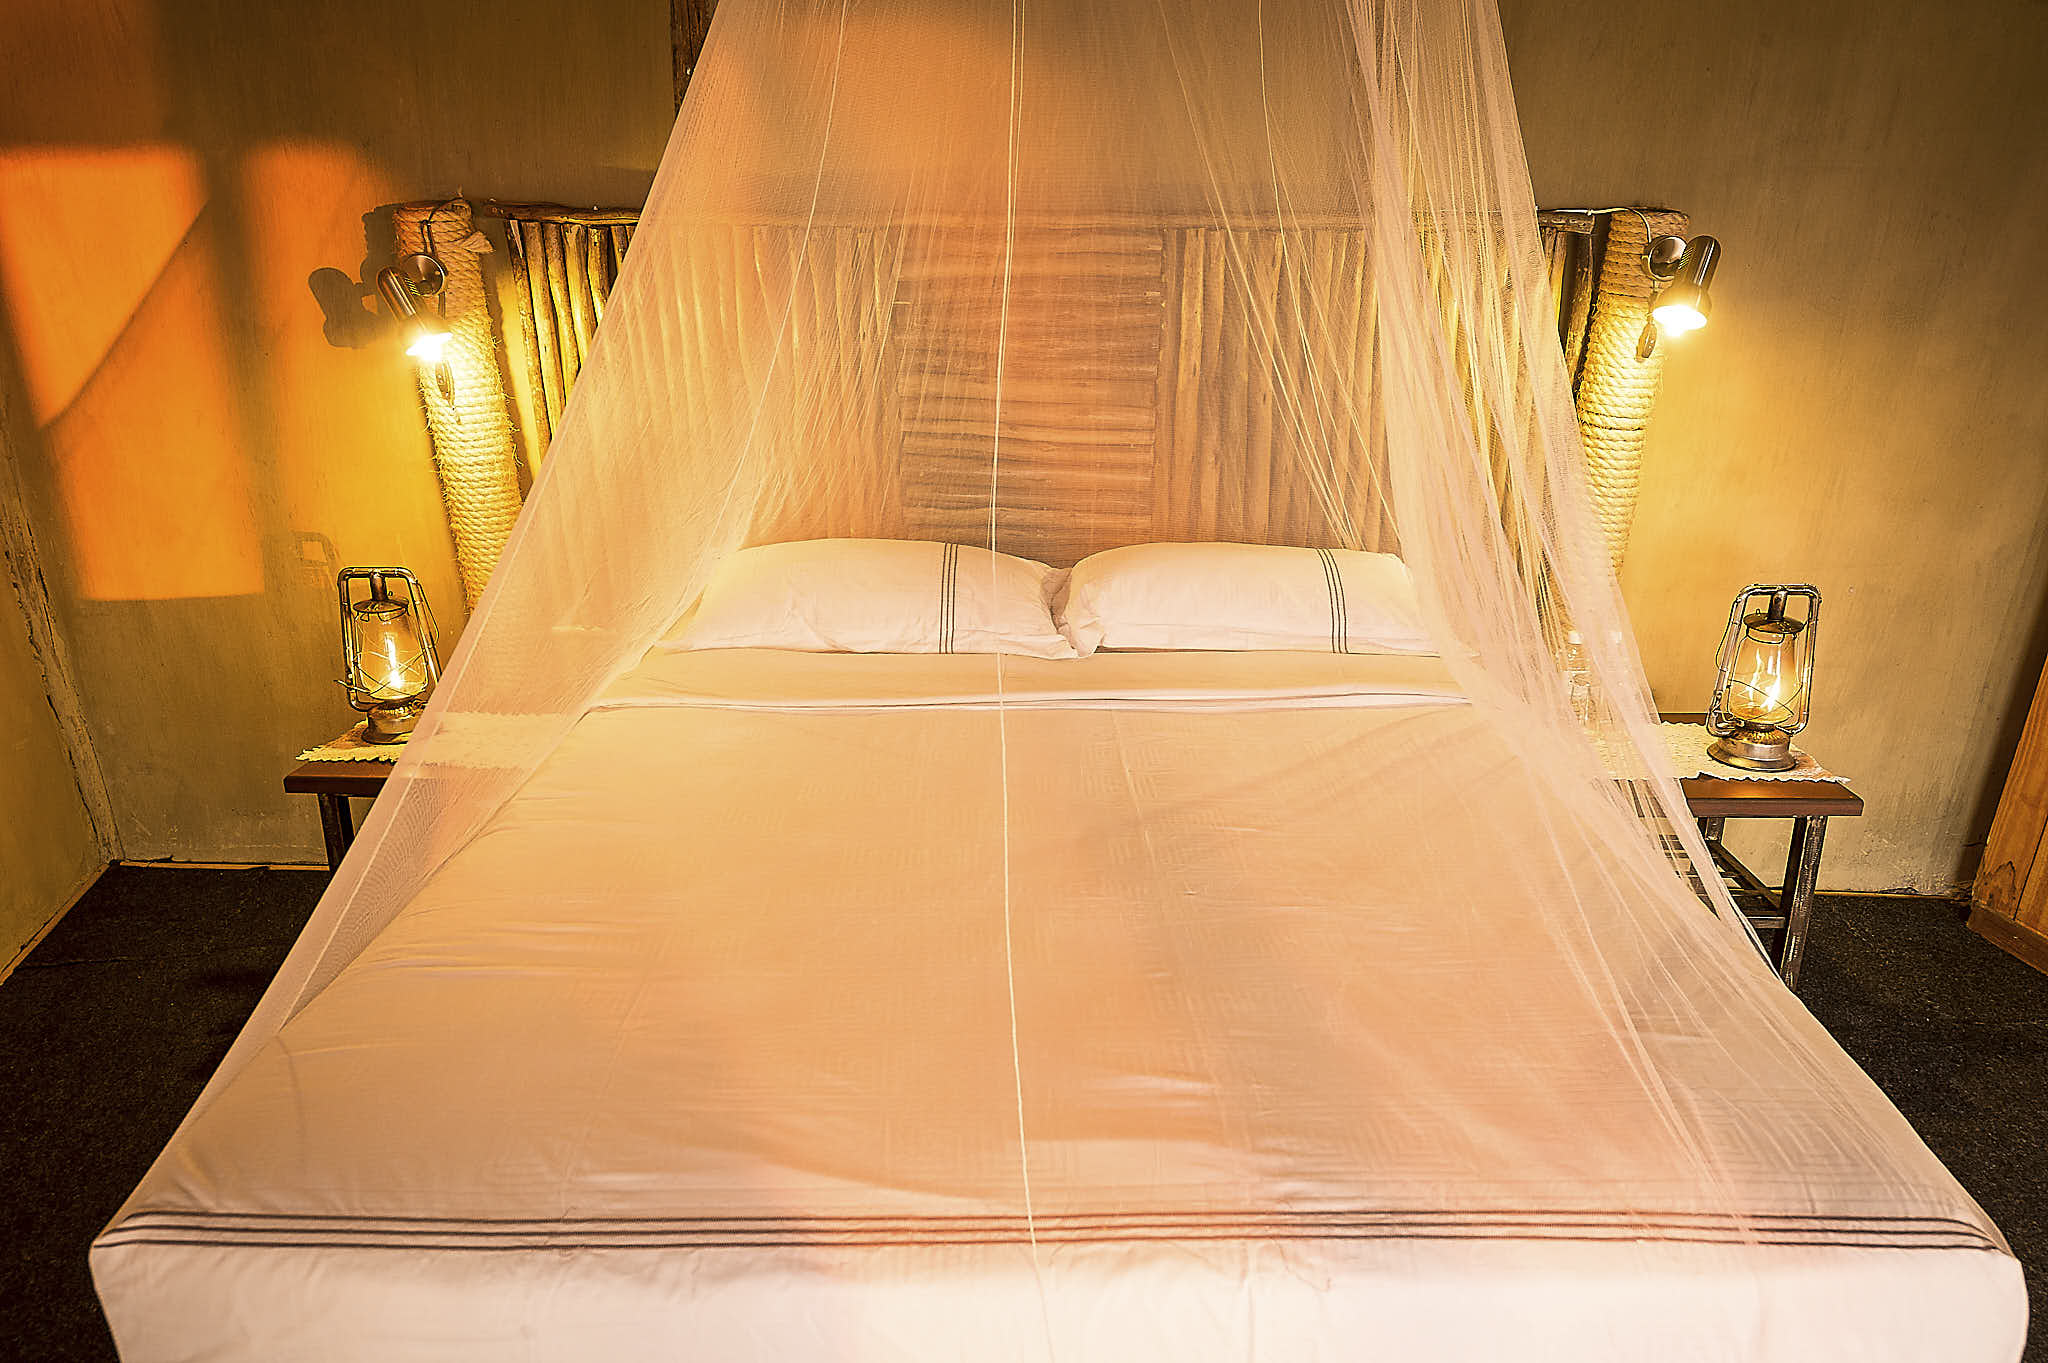 Enjoy the Comfort - Having a good night's rest in between your days of adventures is very important. It is our highest priority to make you and your close ones' stay, enjoyable and comfortable.